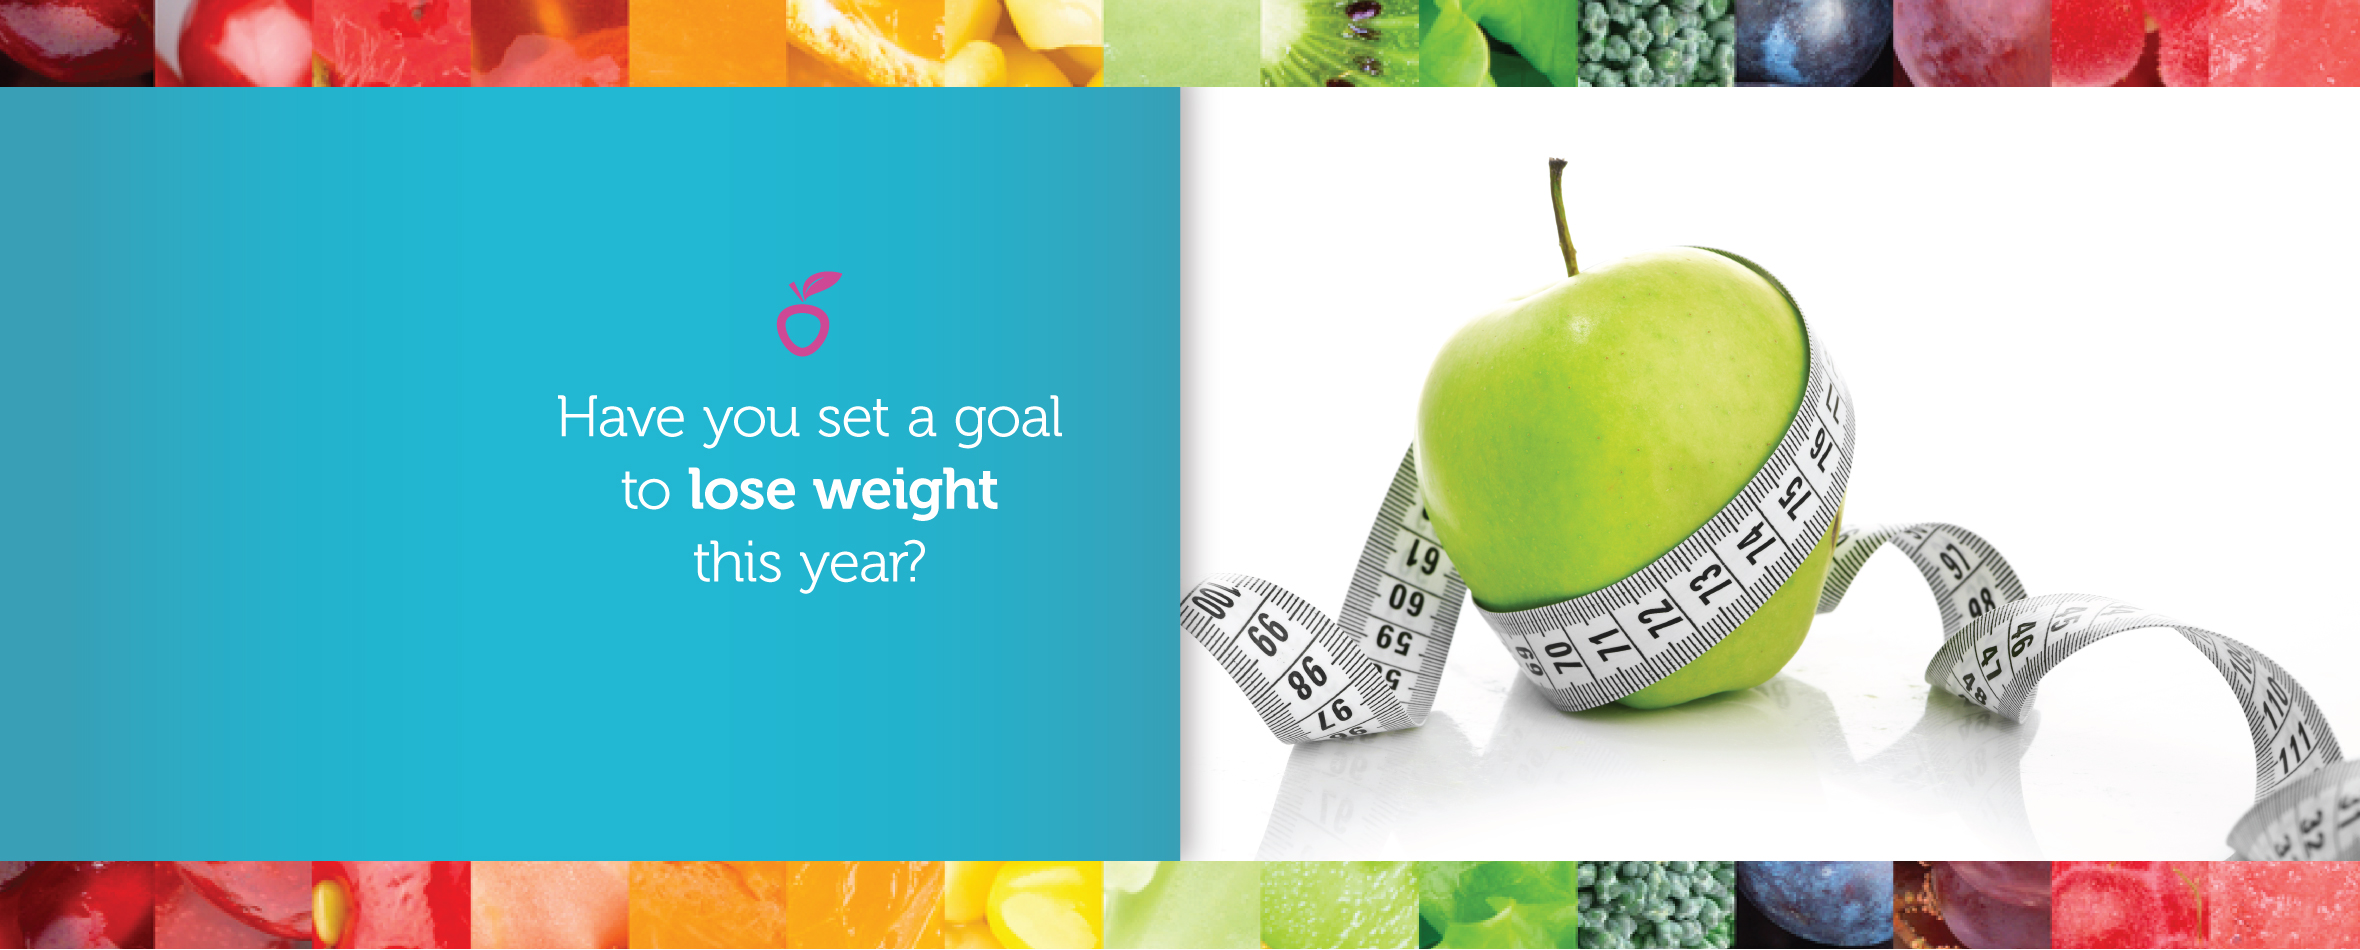 Have you set a goal to lose weight this year?